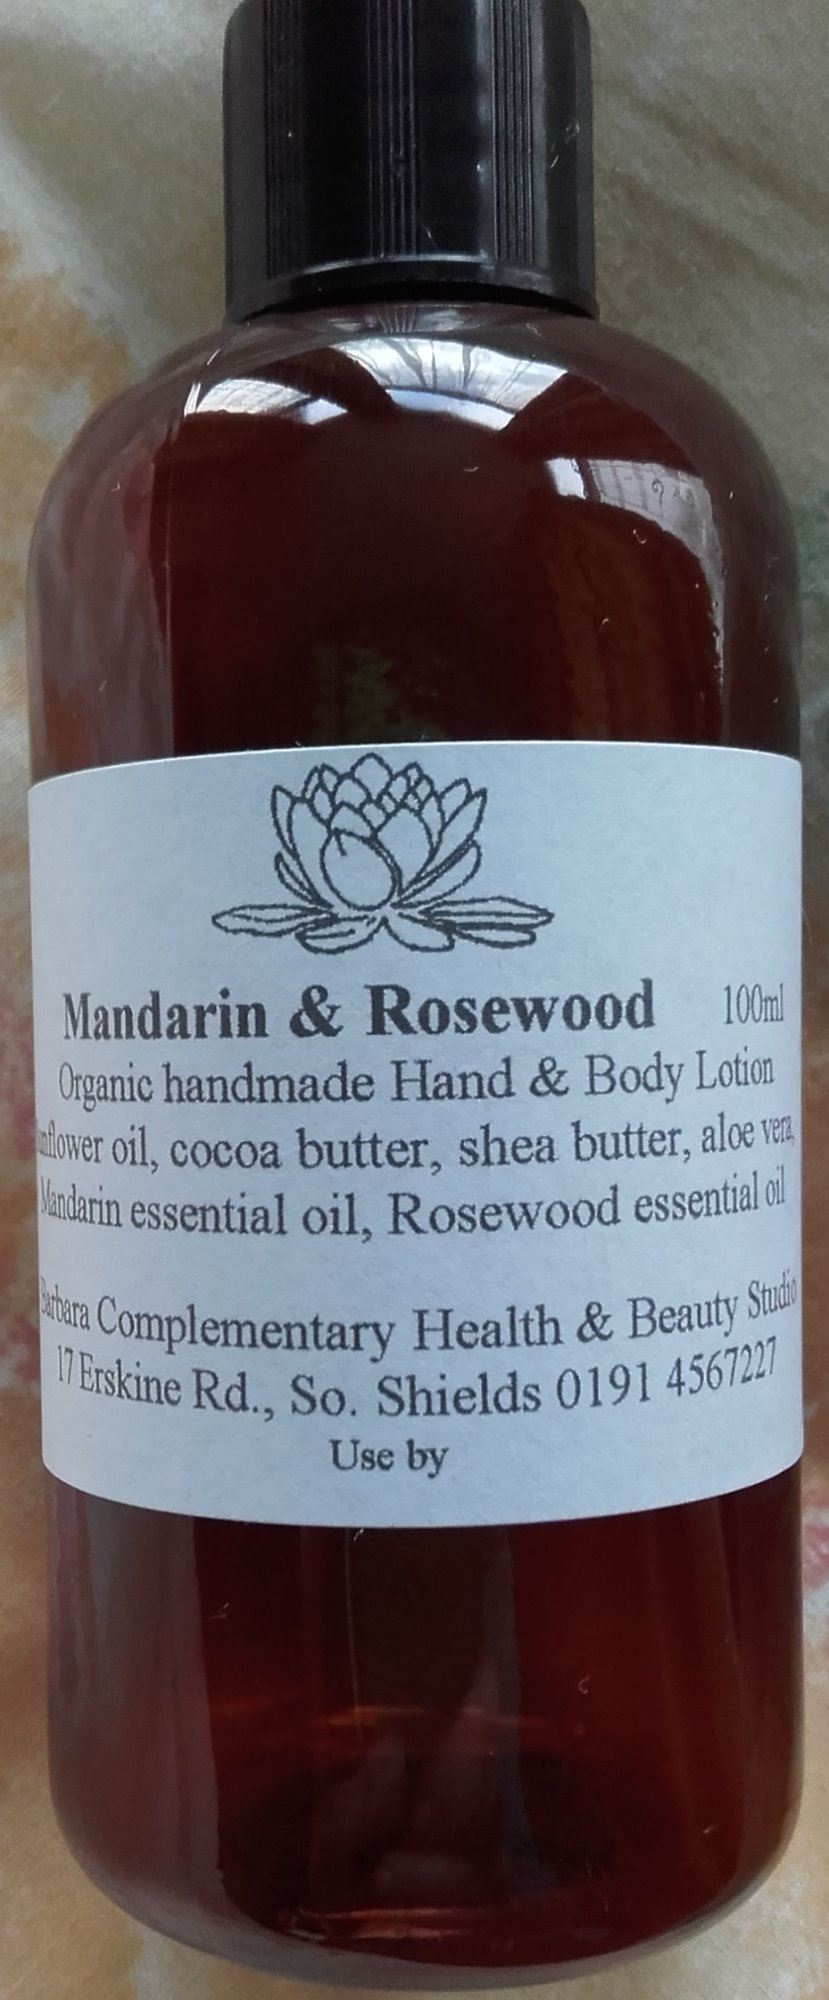 Mandarin & Rosewood Hand and Body Lotion